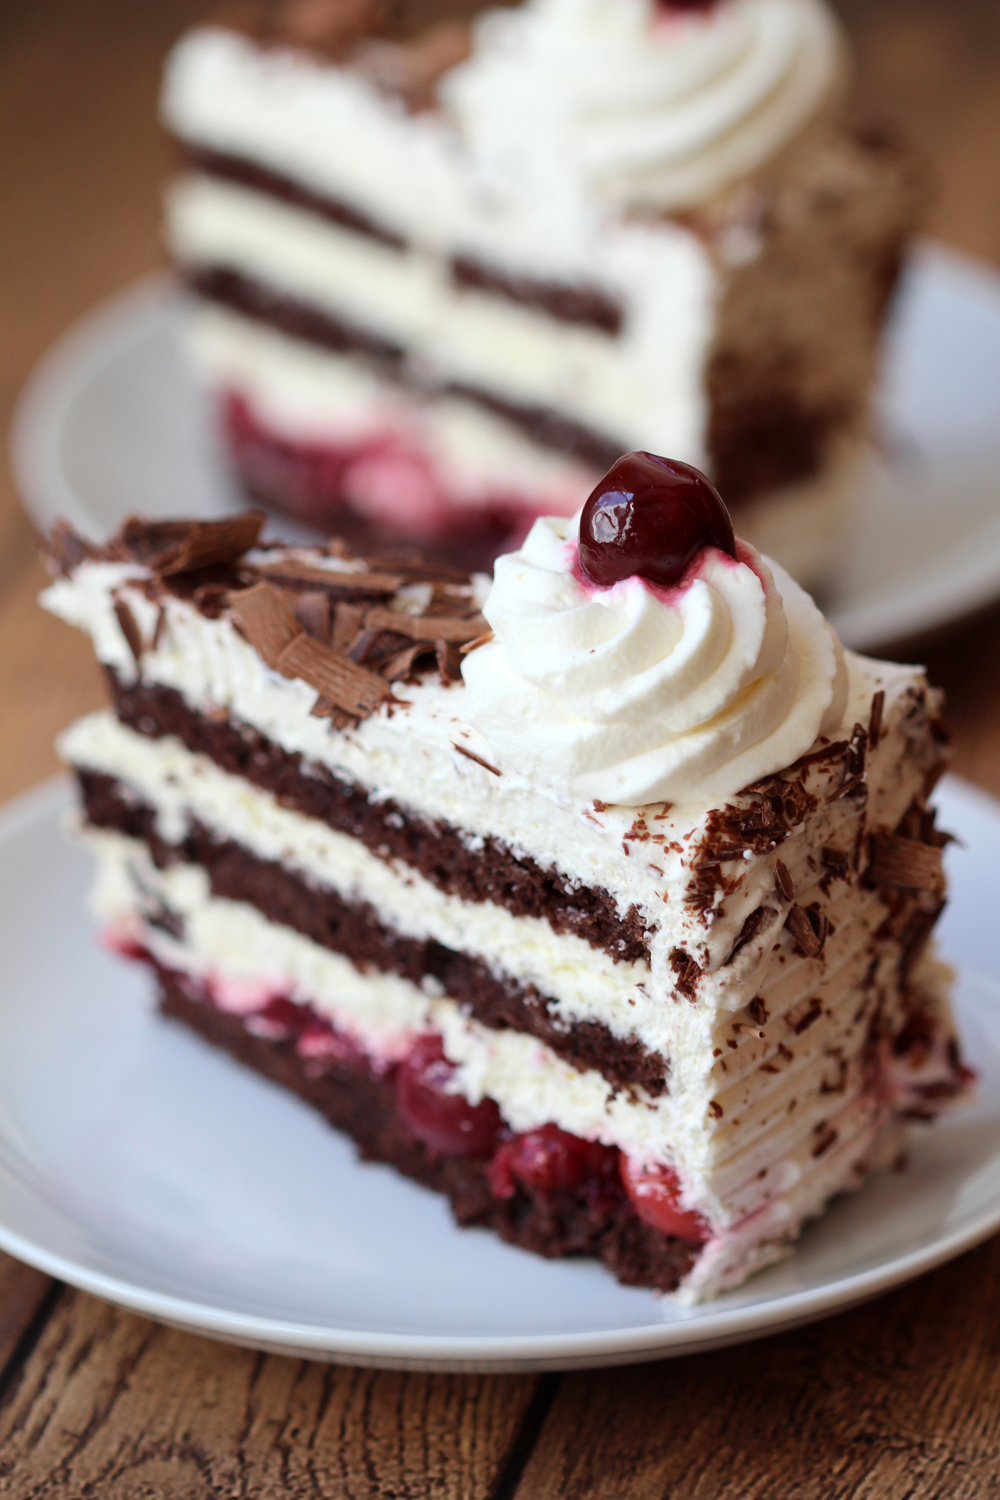 Sliced Schwarzwälder Kirschtorte, or German Black Forest cake